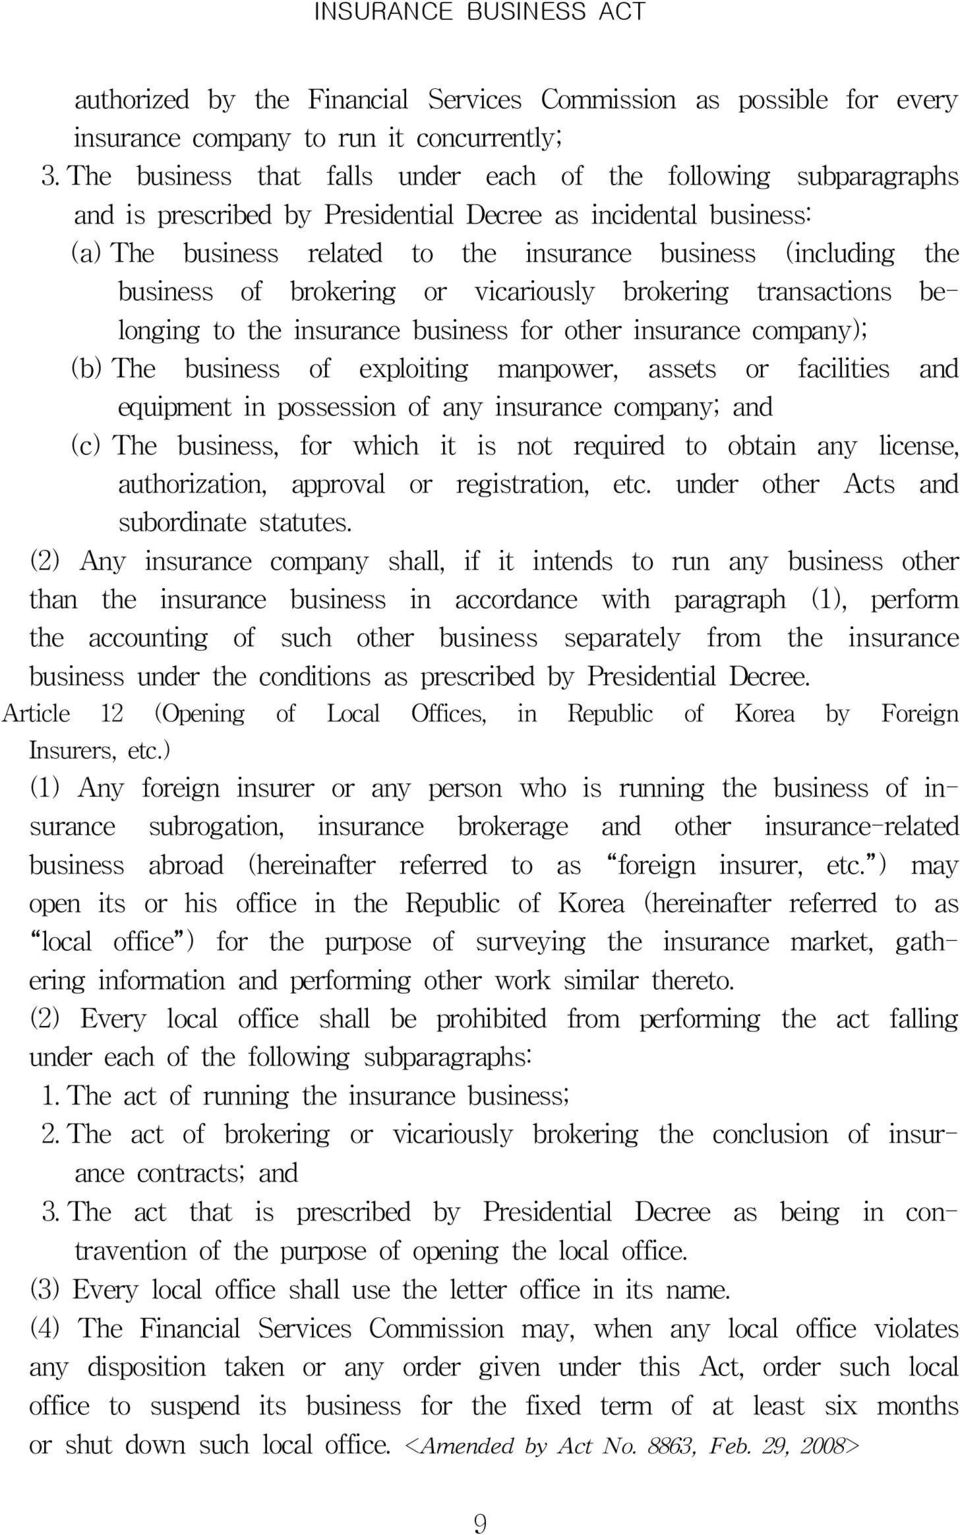 business of brokering or vicariously brokering transactions belonging to the insurance business for other insurance company); (b) The business of exploiting manpower, assets or facilities and